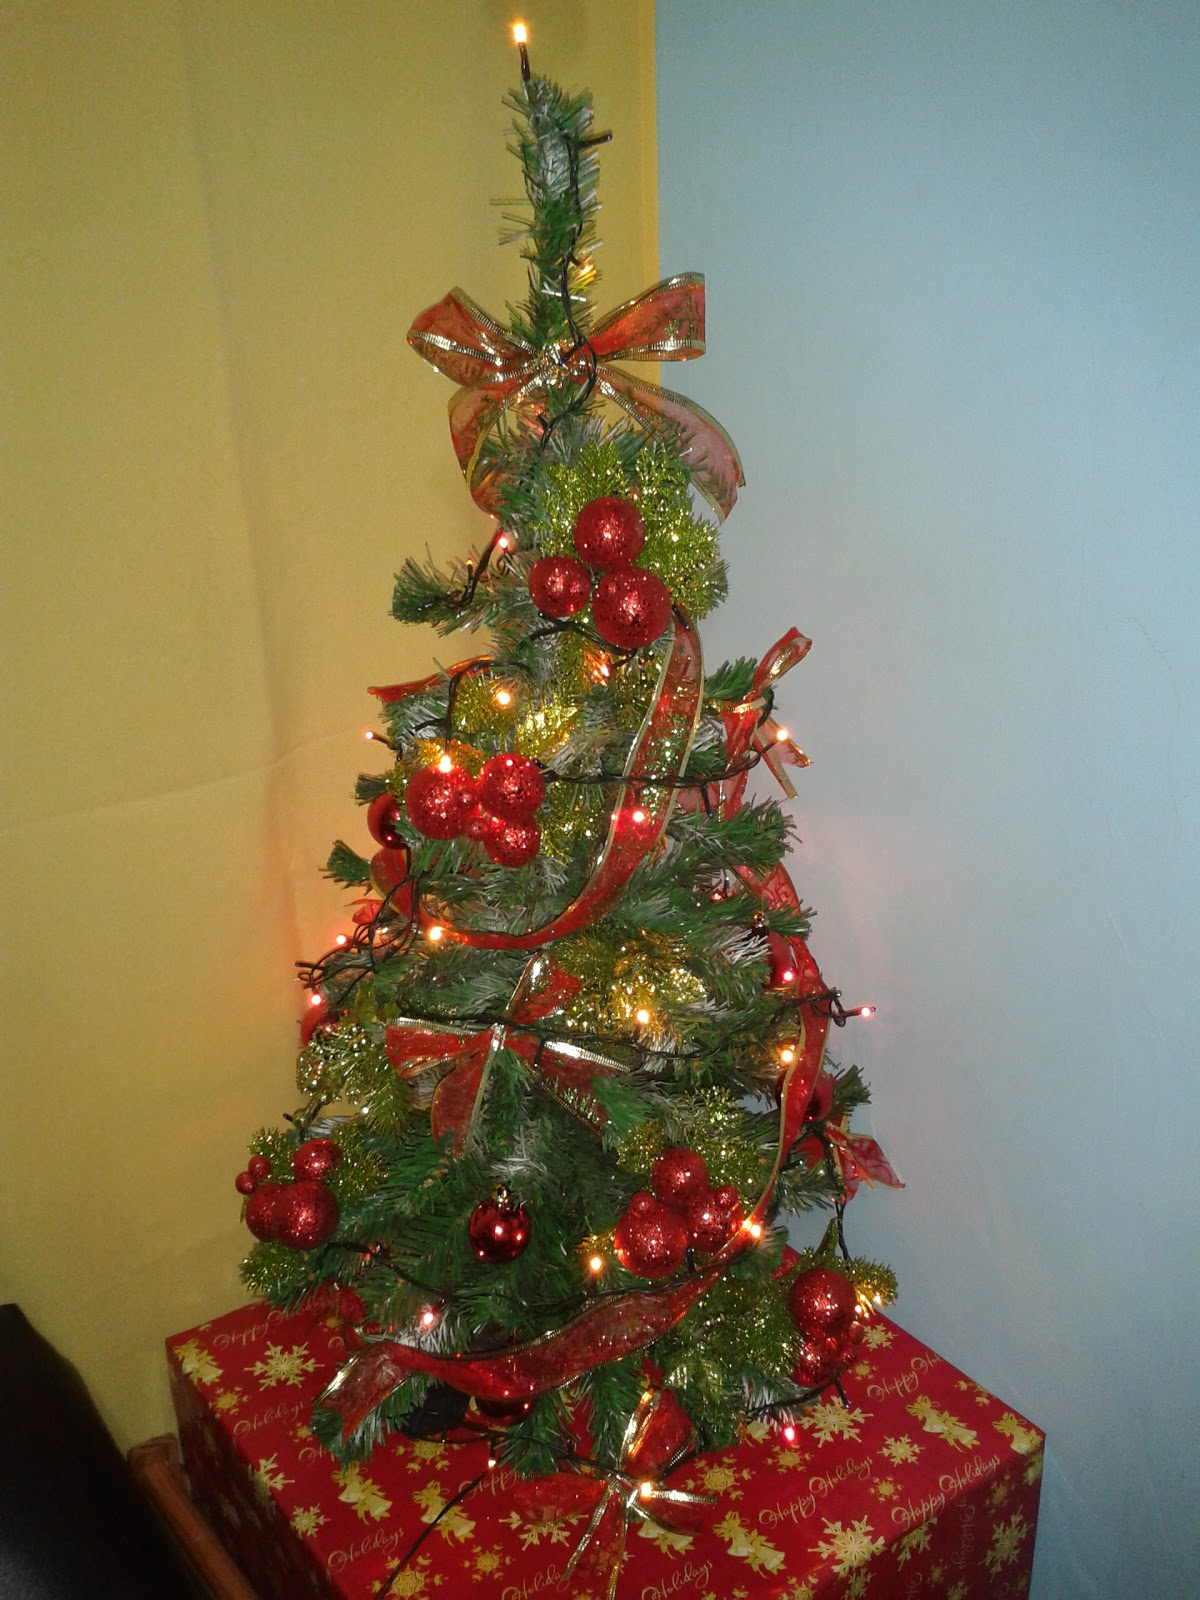 Our Little Christmas Tree